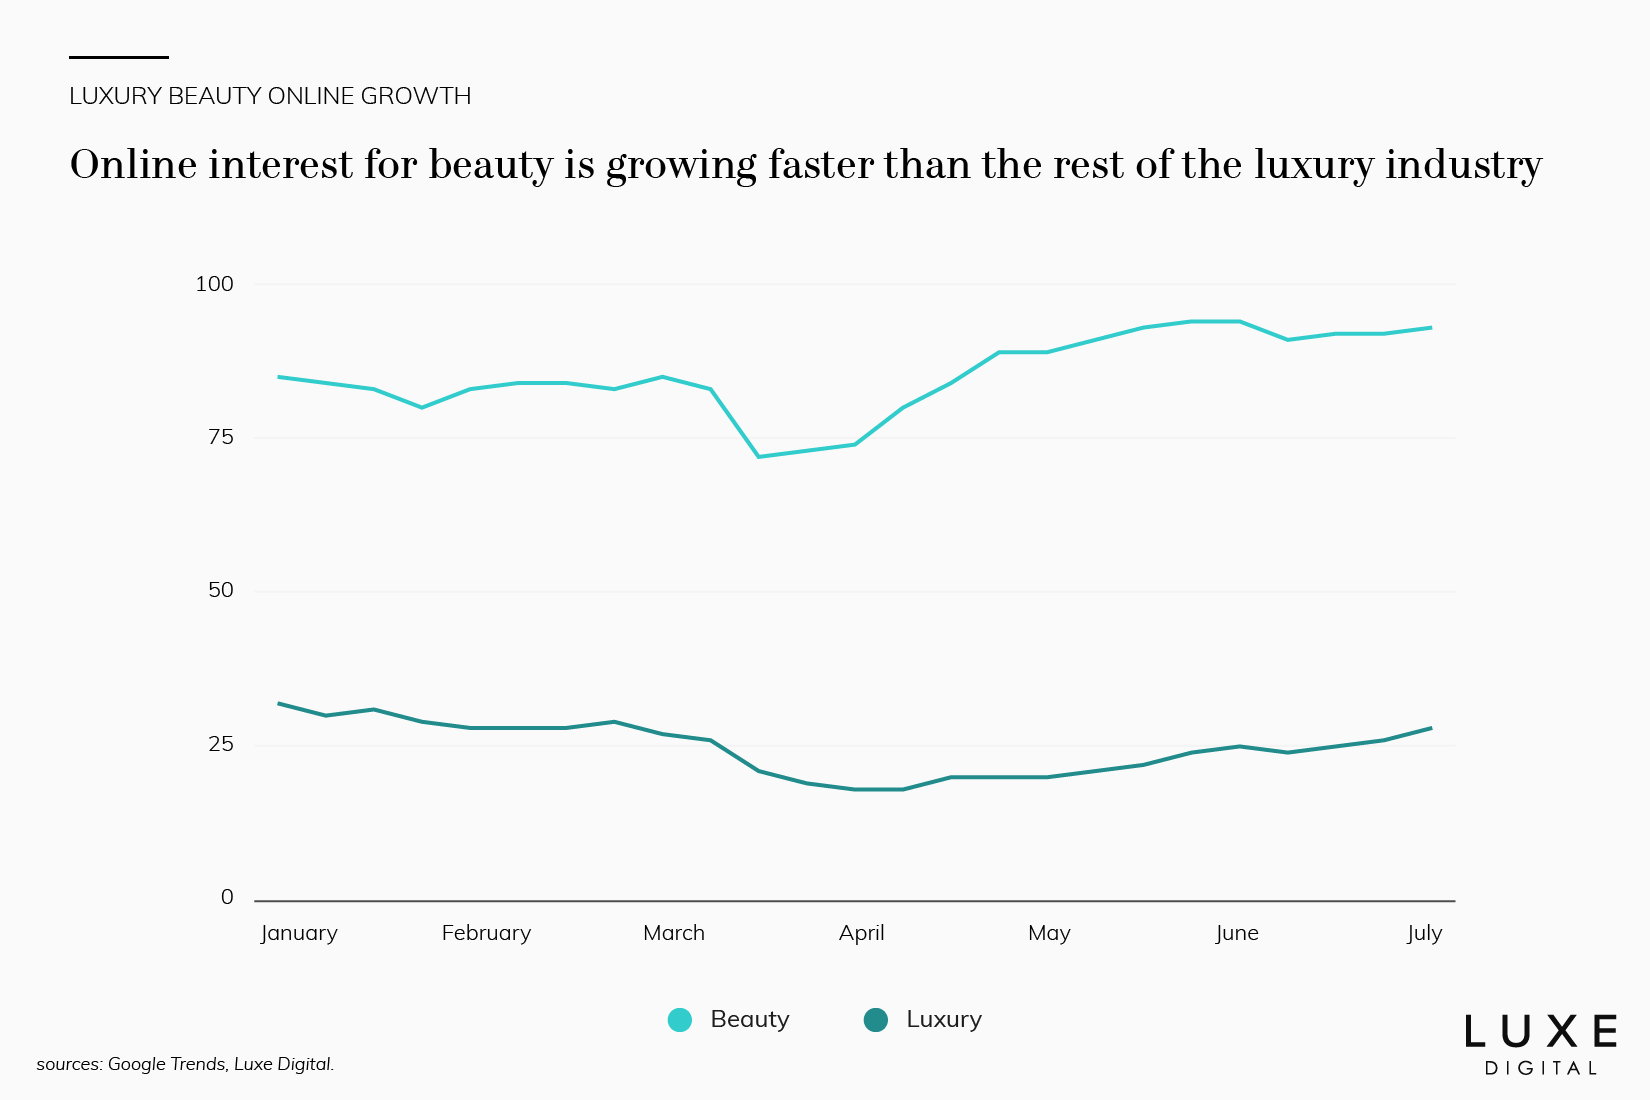 online luxury beauty retail growth data - Luxe Digital